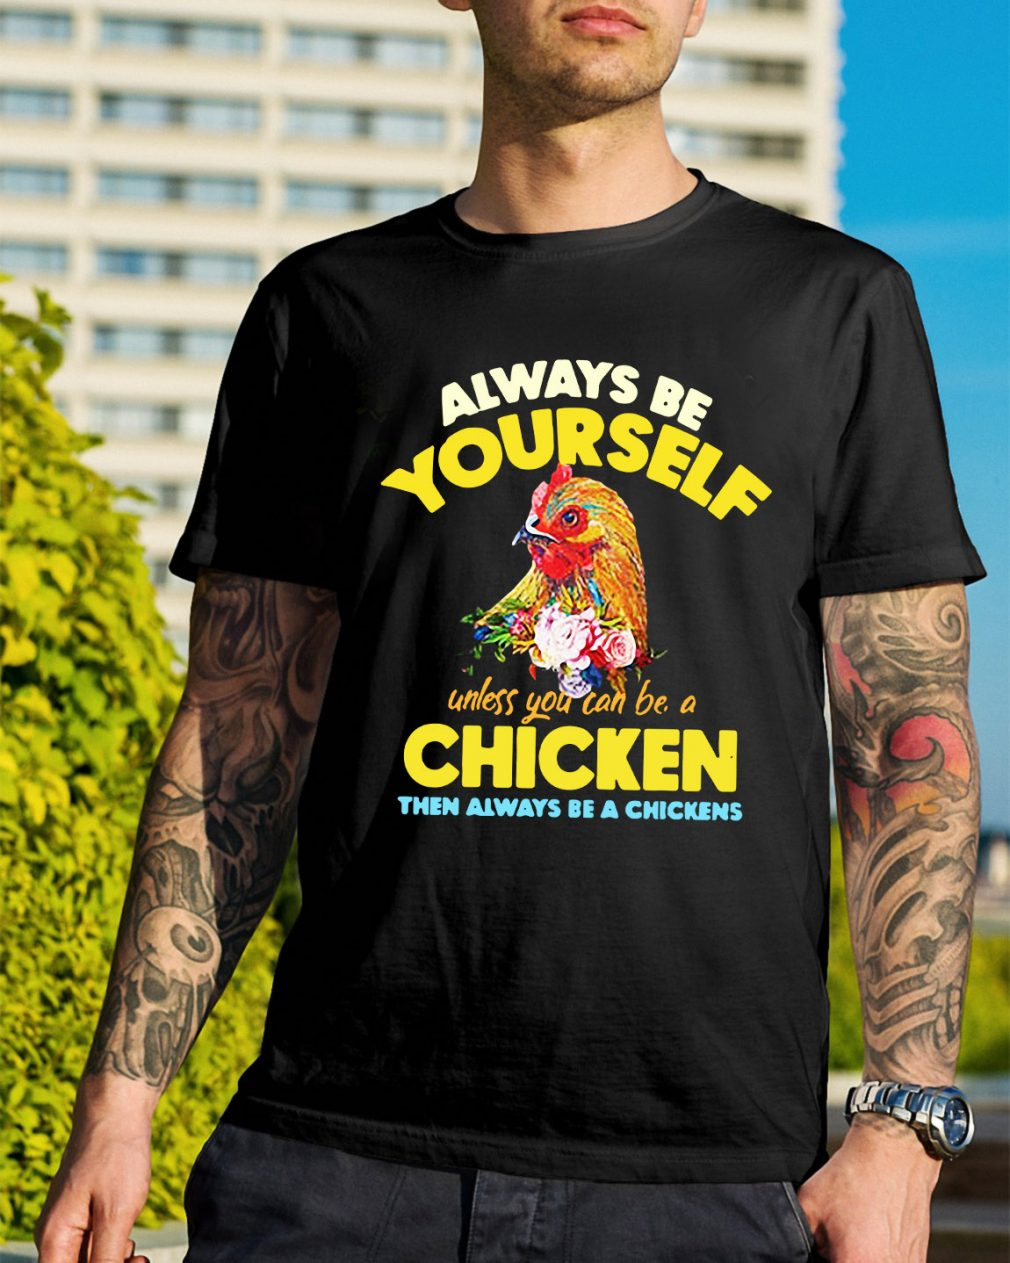 Be yourself unless you can be a chicken then always be a chickens shirt